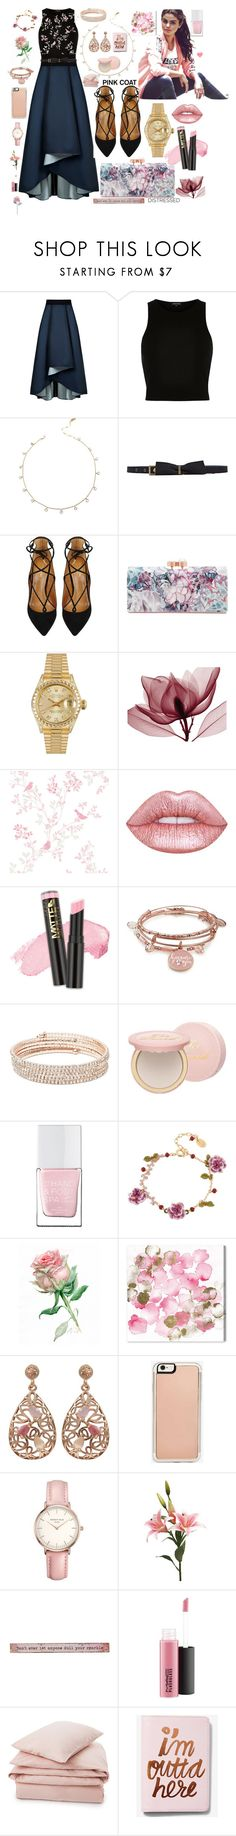 """""""🌸💛"""" by kiaracouture ❤ liked on Polyvore featuring Sachin + Babi, River Island, Lanvin, Aquazzura, Ted Baker, Rolex, adidas NEO, Lime Crime, Alex and Ani and Anne Klein"""